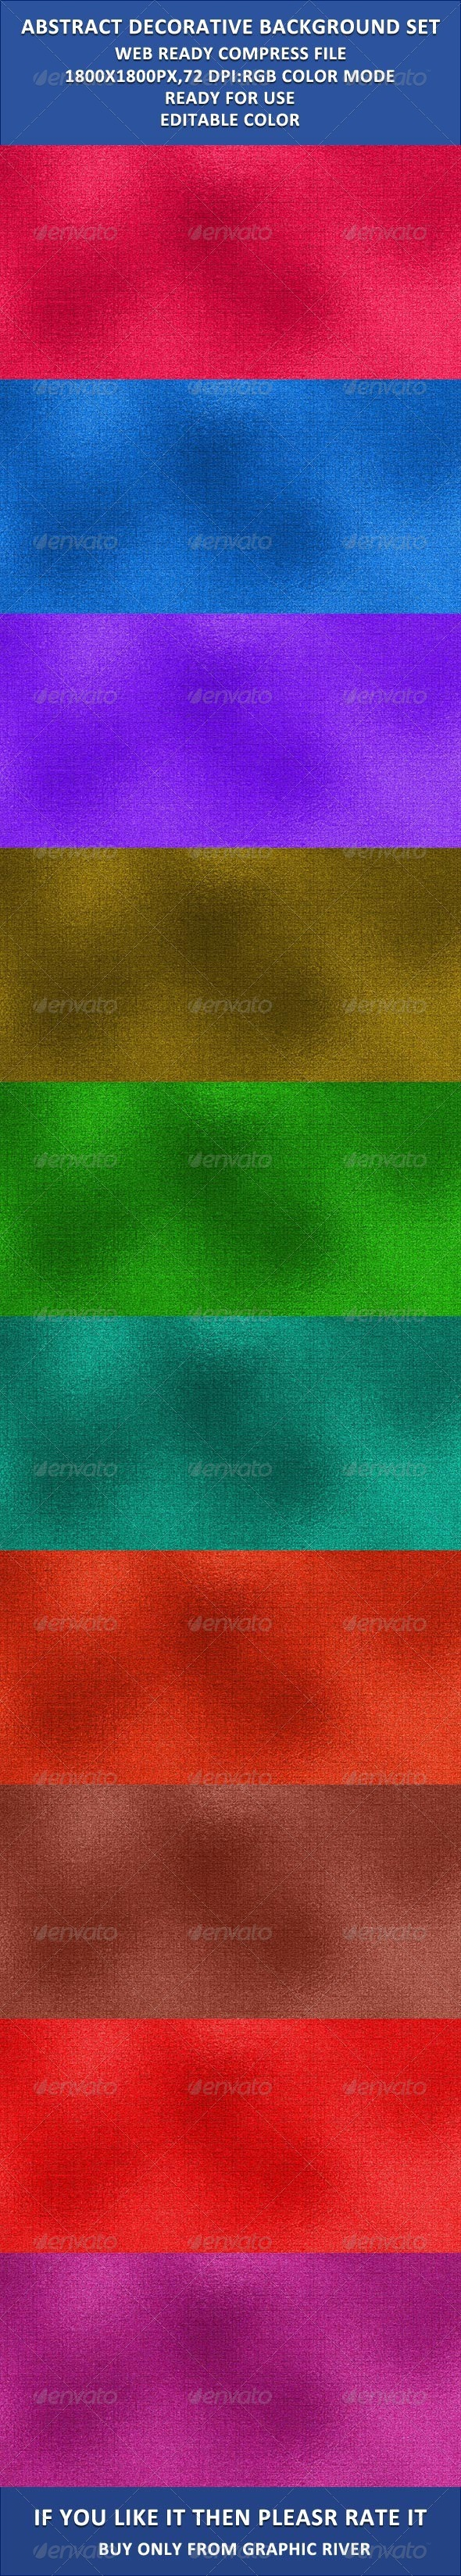 Decorative Fabric Background Set - Patterns Backgrounds